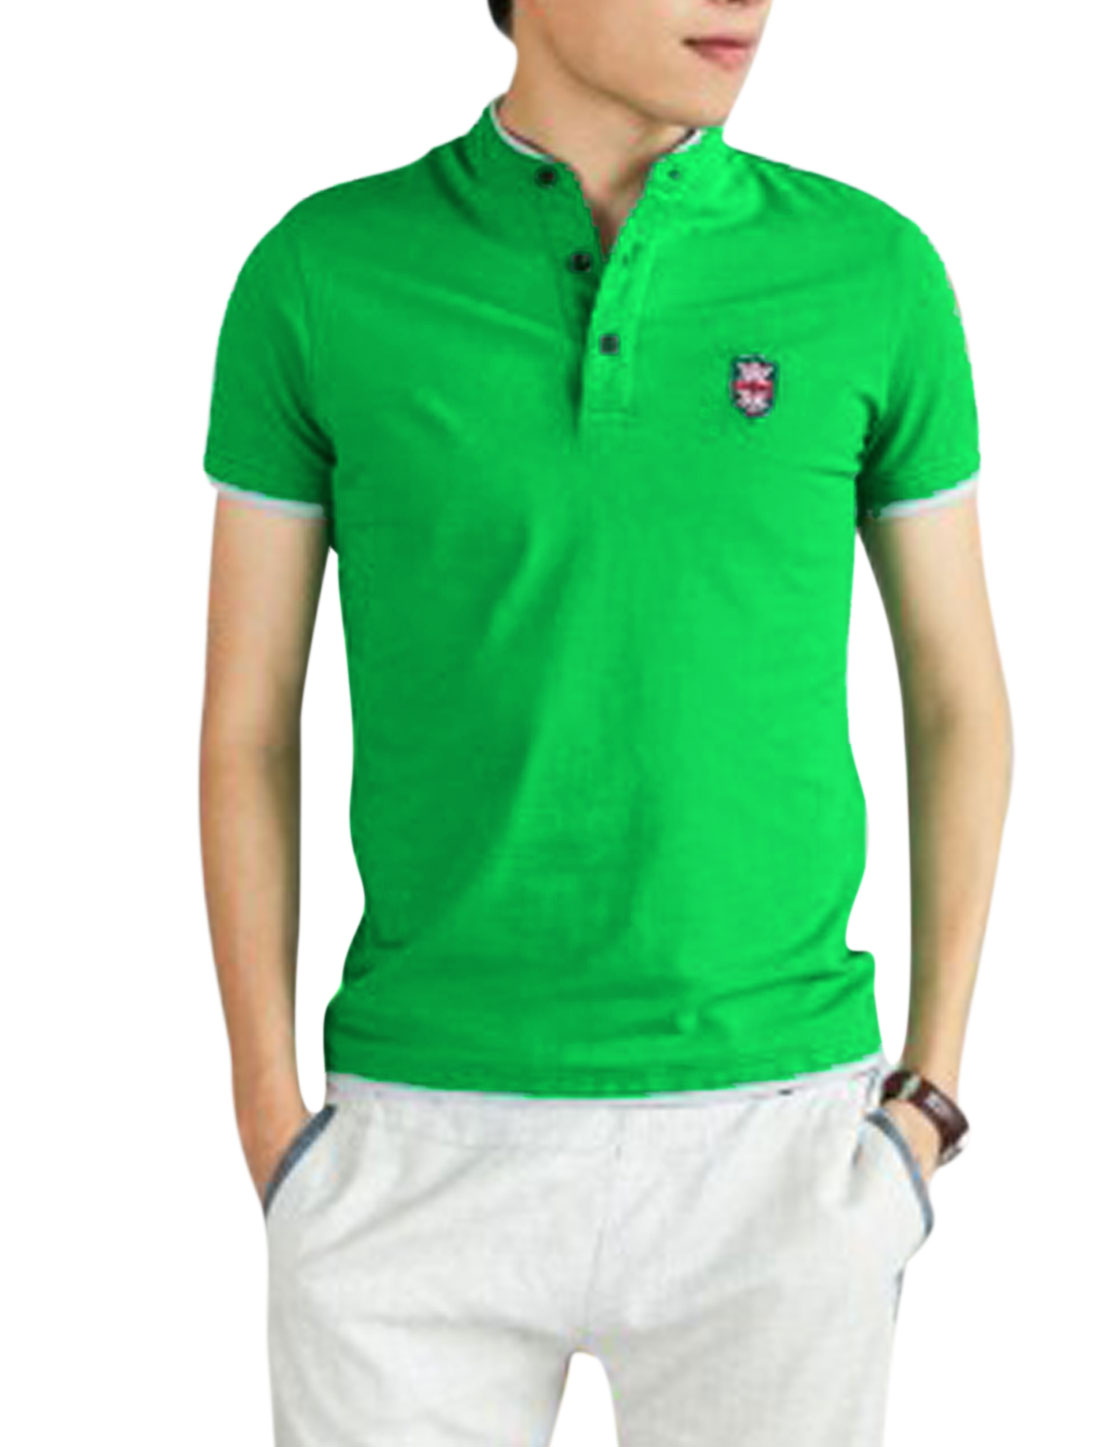 Men Stand Collar 1/4 Placket Layered Hem Trendy Polo Shirt Green M